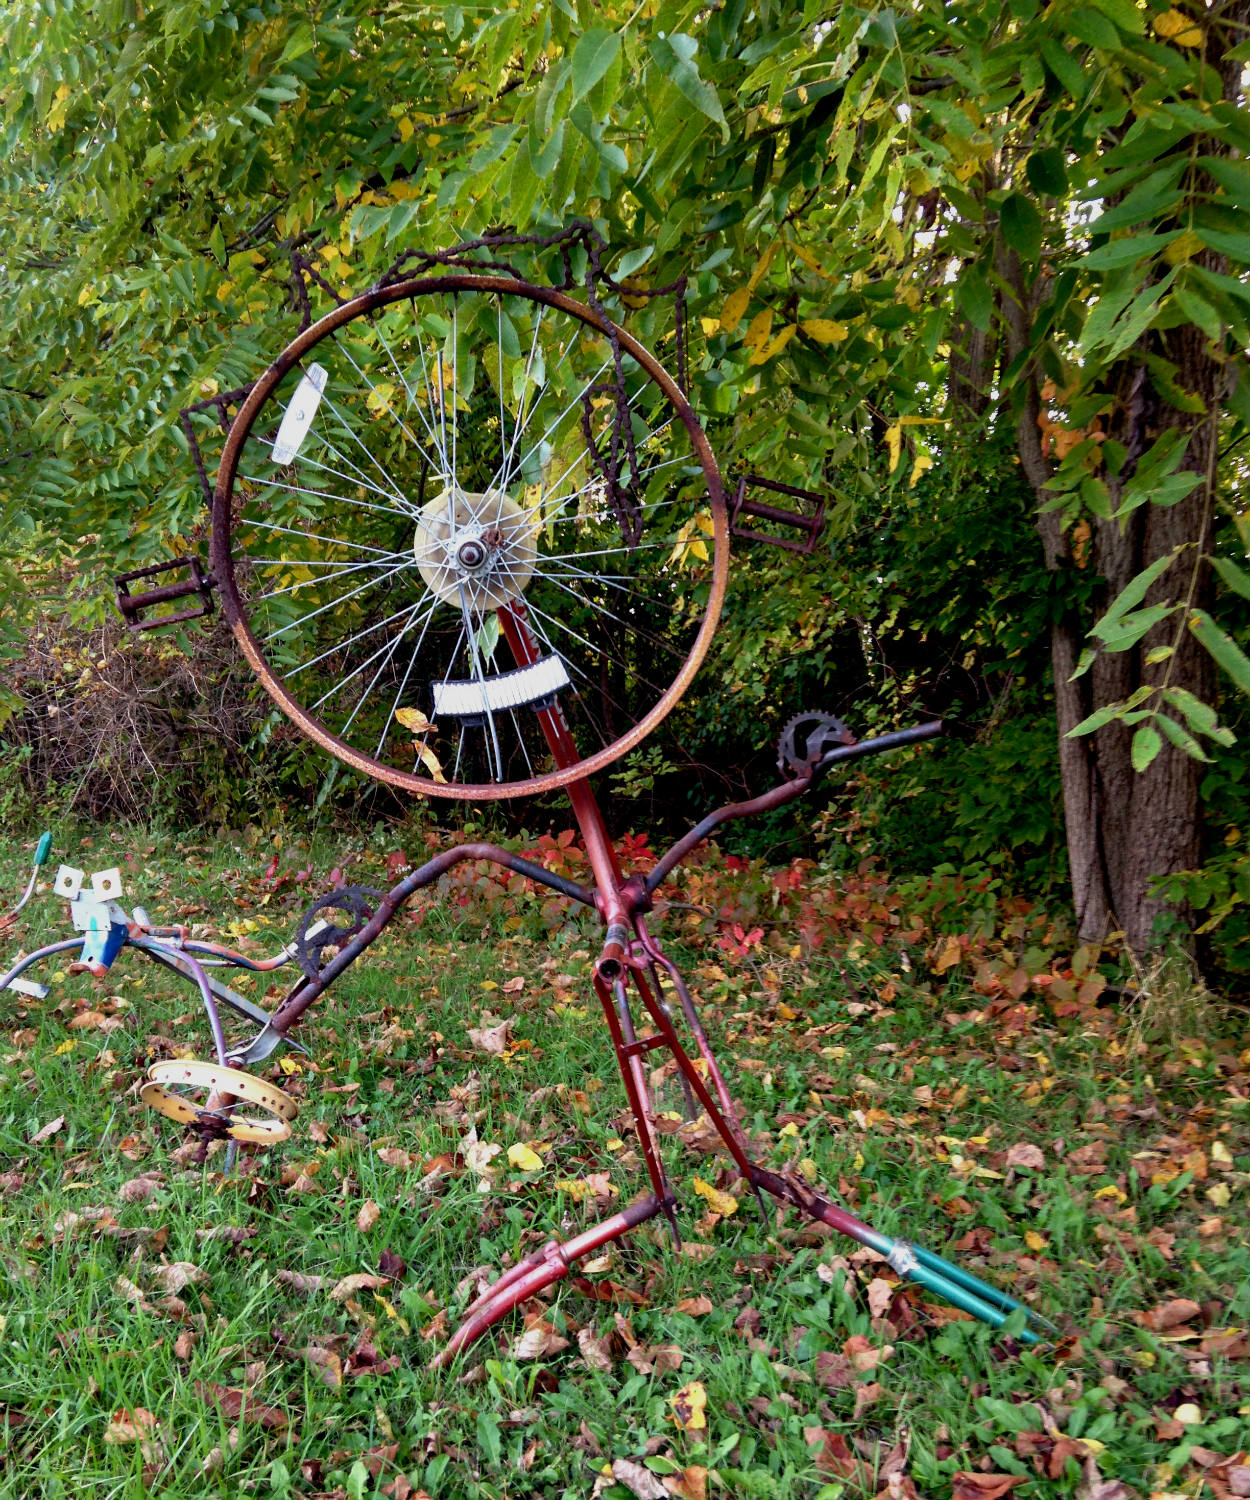 Bicycle Art and Yard Sculptures - Palmyra, NY Statue